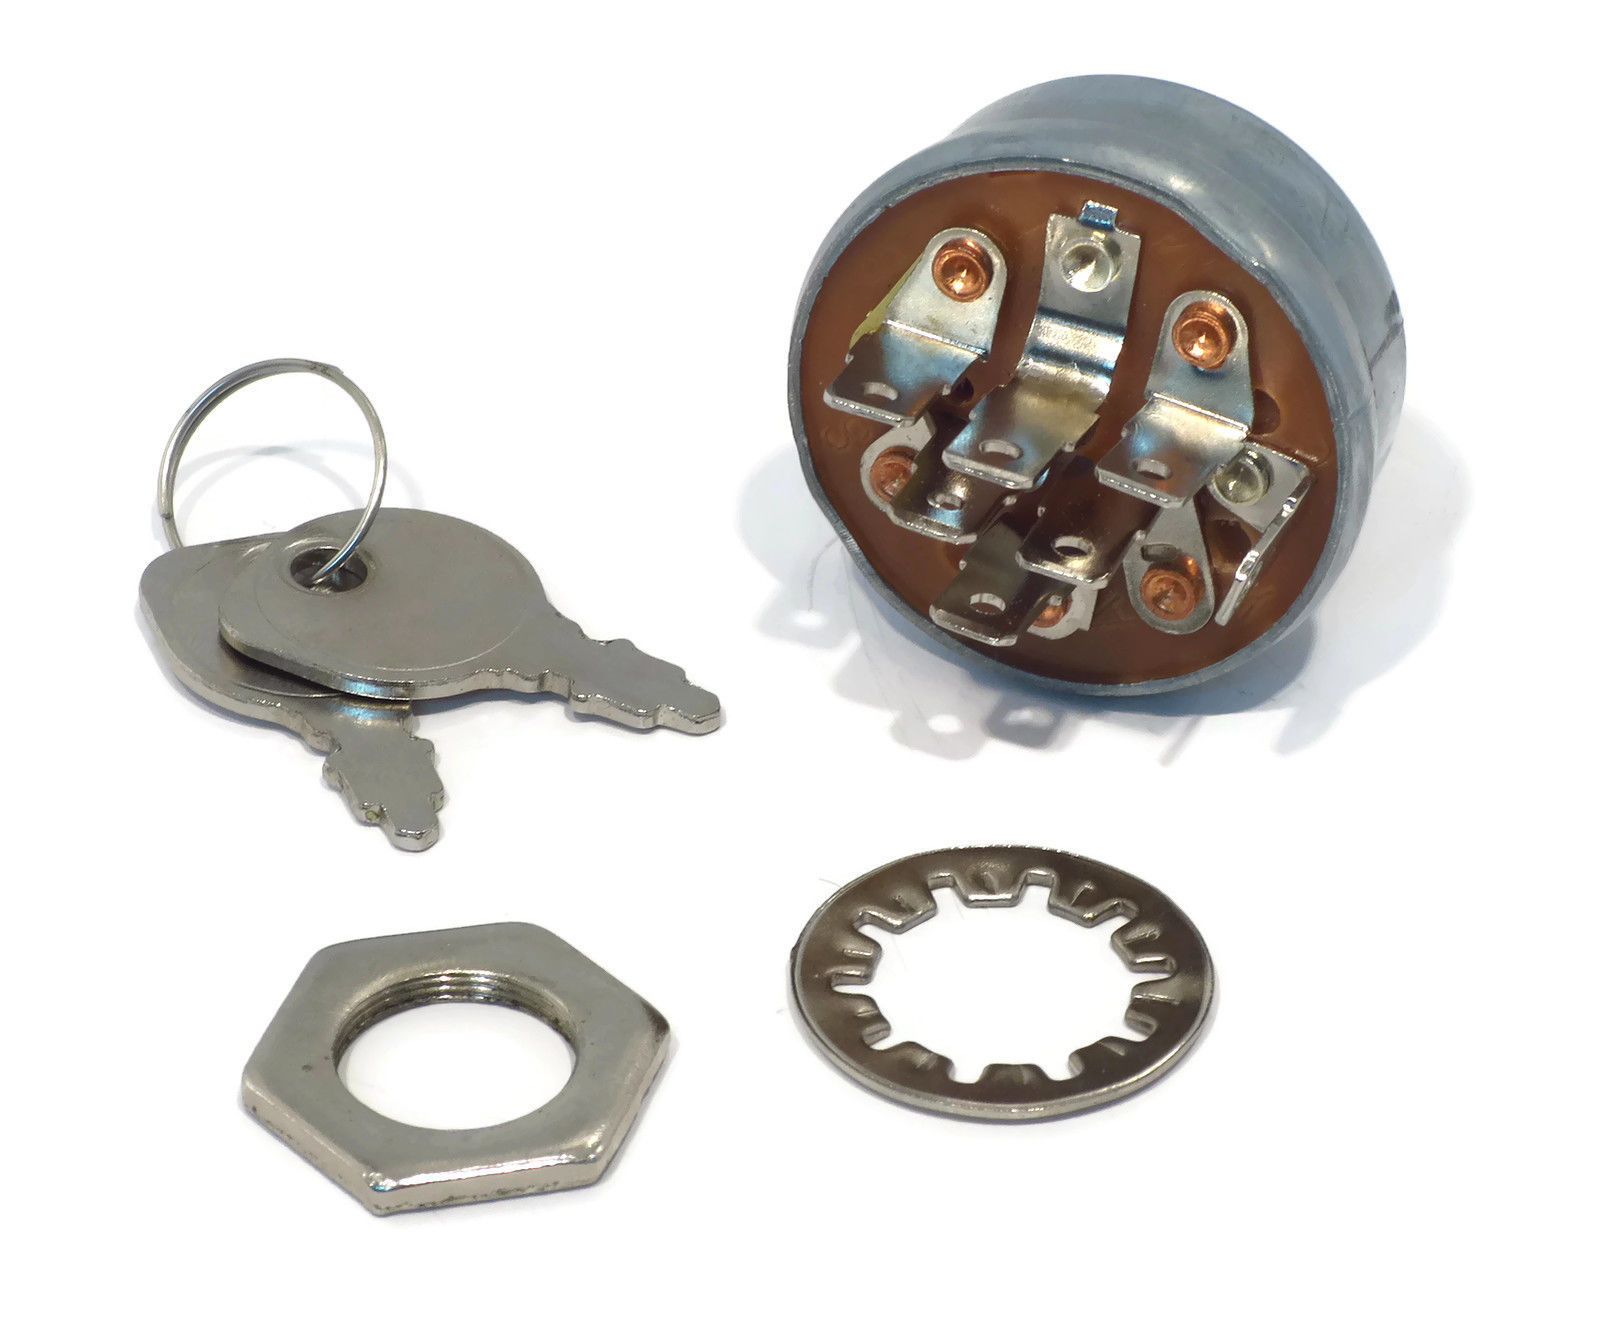 IGNITION KEY SWITCH w  2 Keys for Stens 430-674 430674 Rotary 9623 Lawn Tractors by The ROP Shop by The ROP Shop